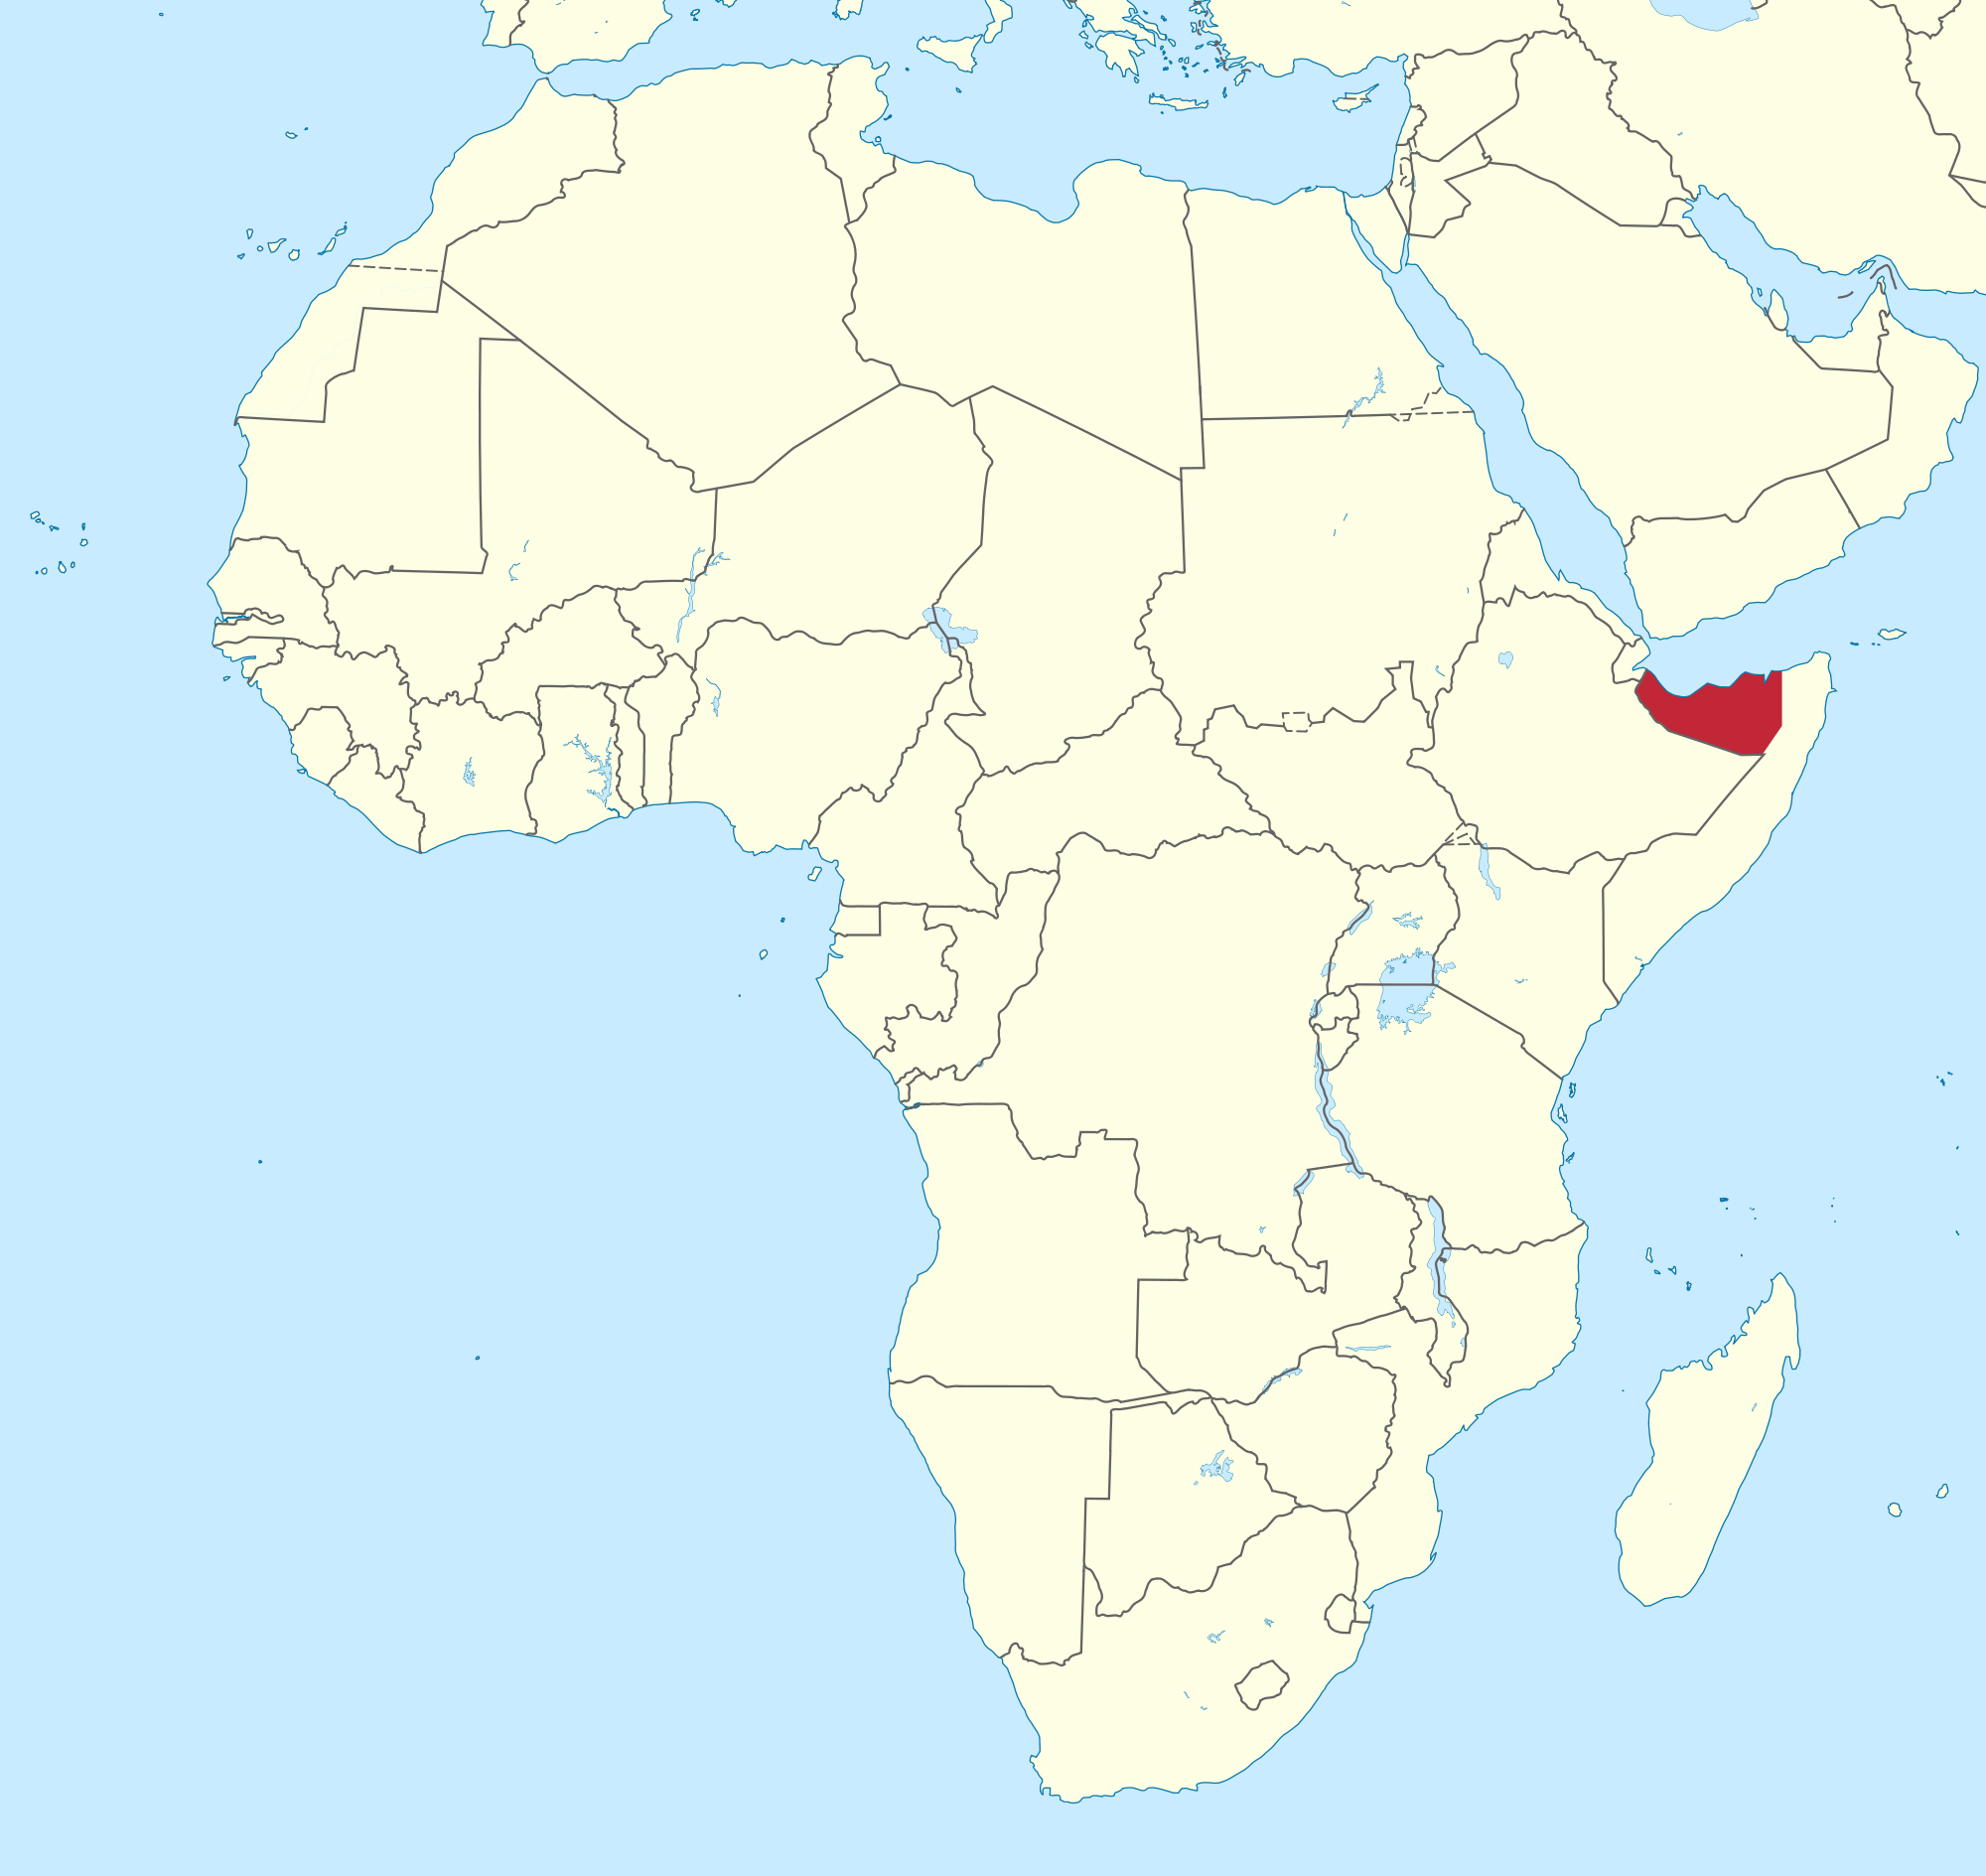 Location of the Somaliland in the World Map